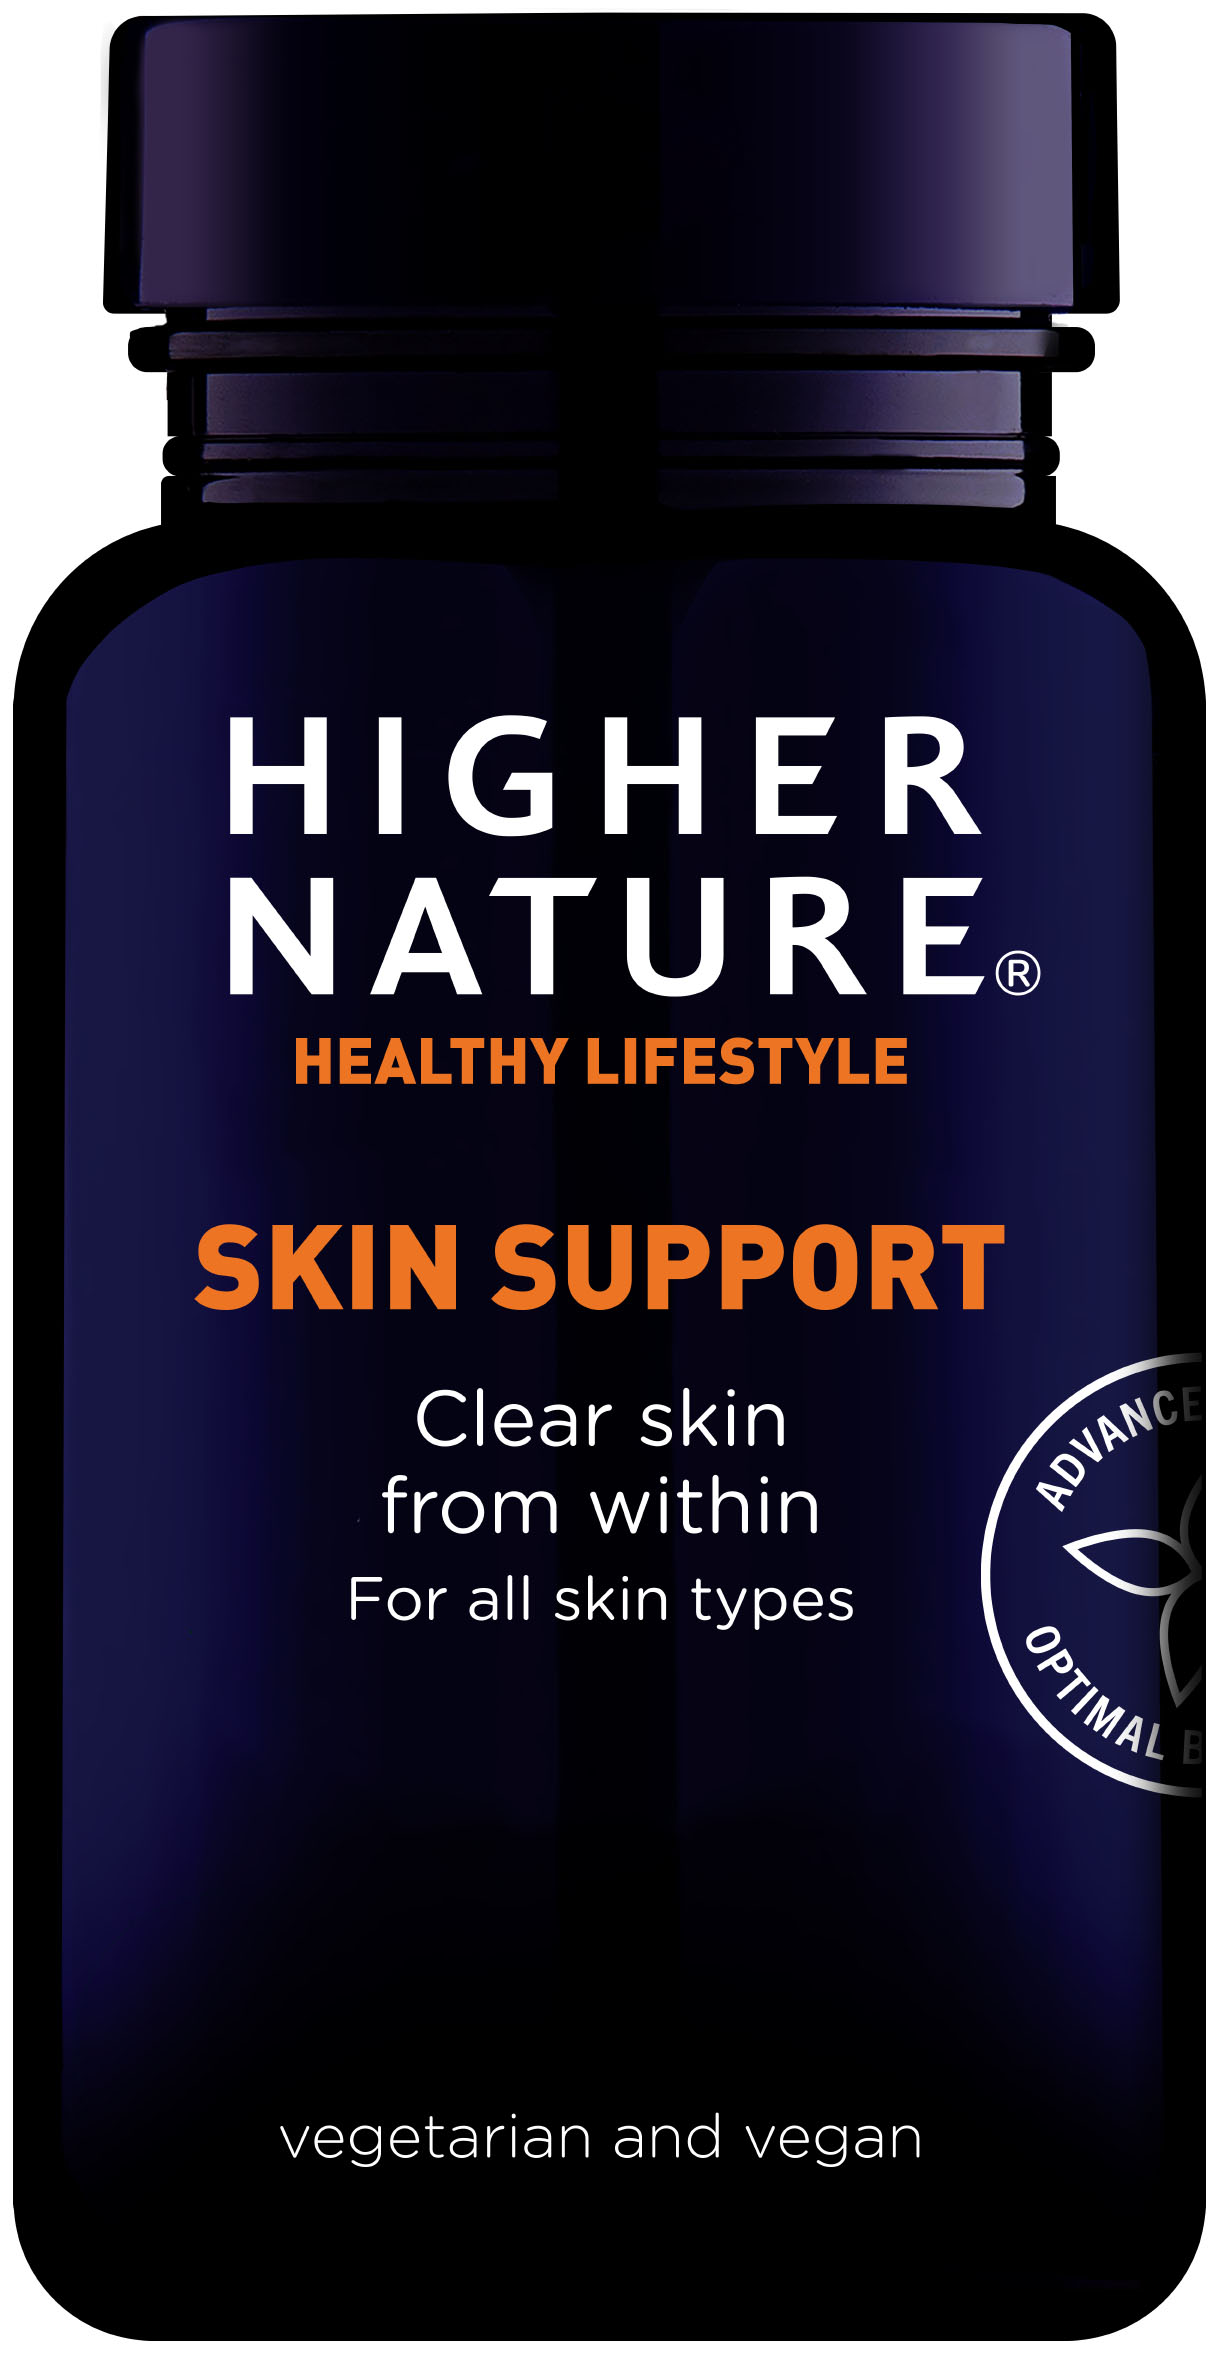 Skin Support